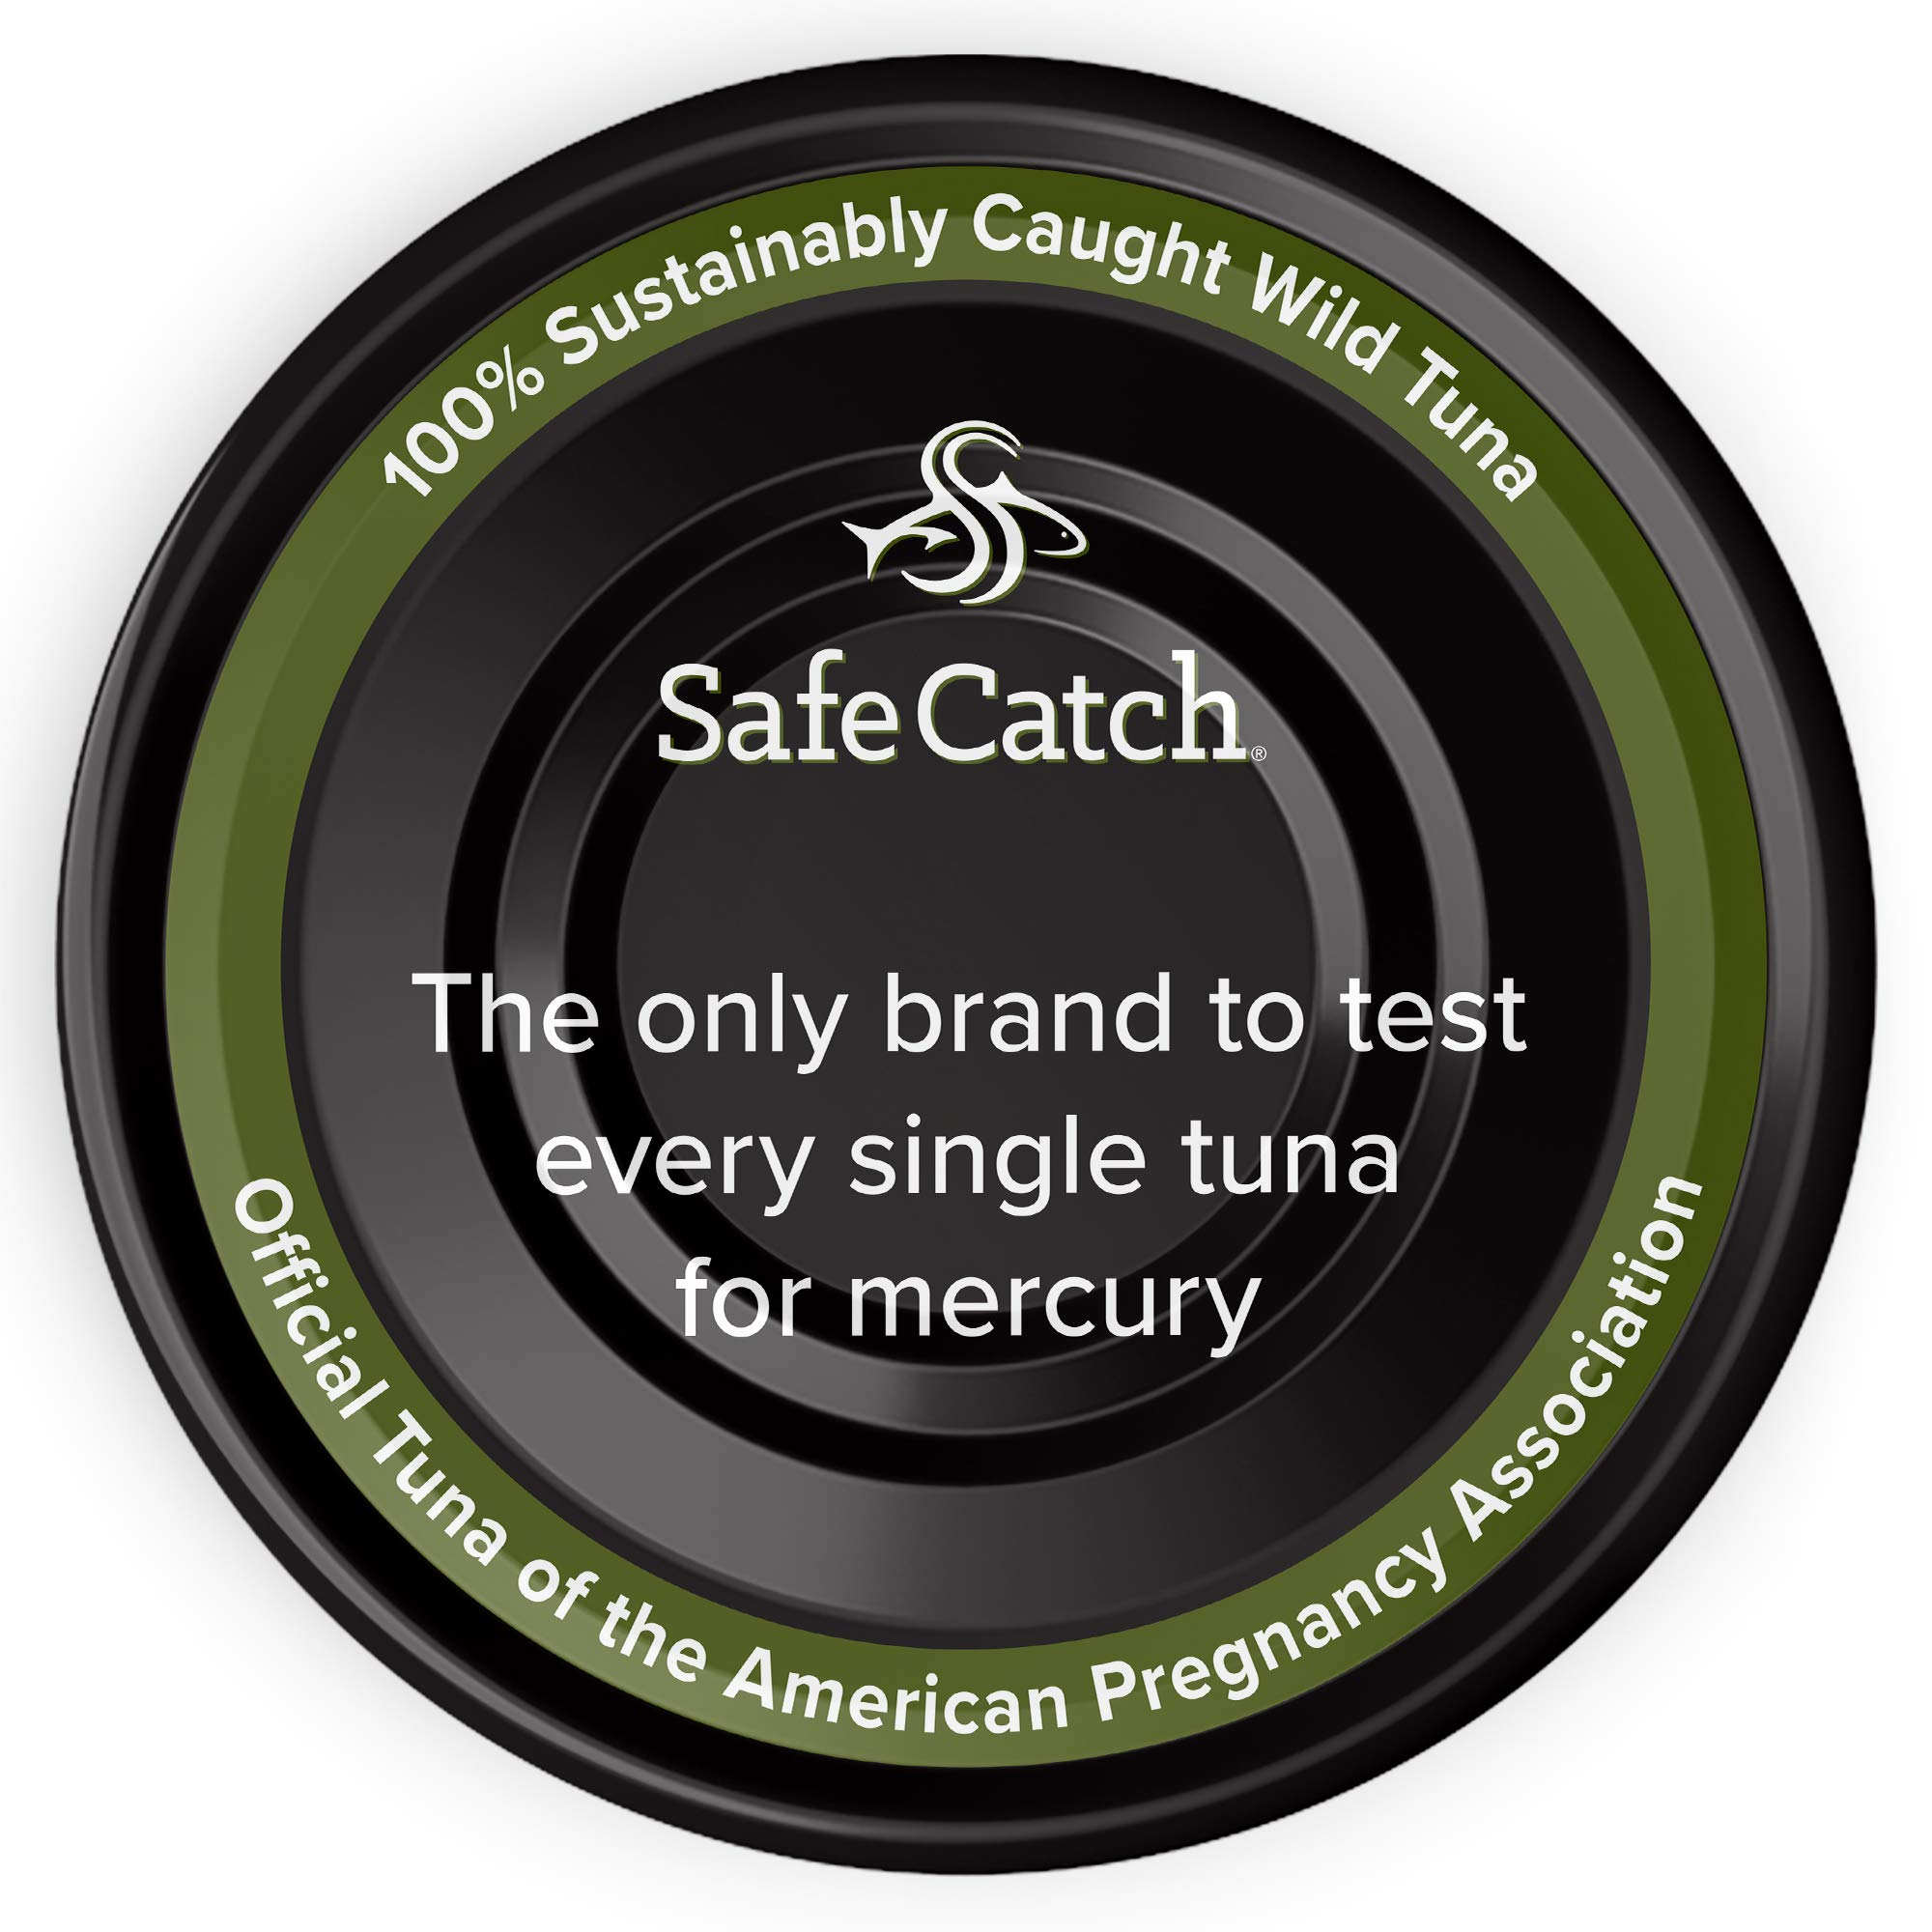 Safe Catch Ahi, Lowest Mercury Solid Wild Yellowfin Tuna Steak, 5 oz Can. The Only Brand to Test Every Tuna for Mercury (6 Pack in Avocado Oil) by Safe Catch (Image #3)